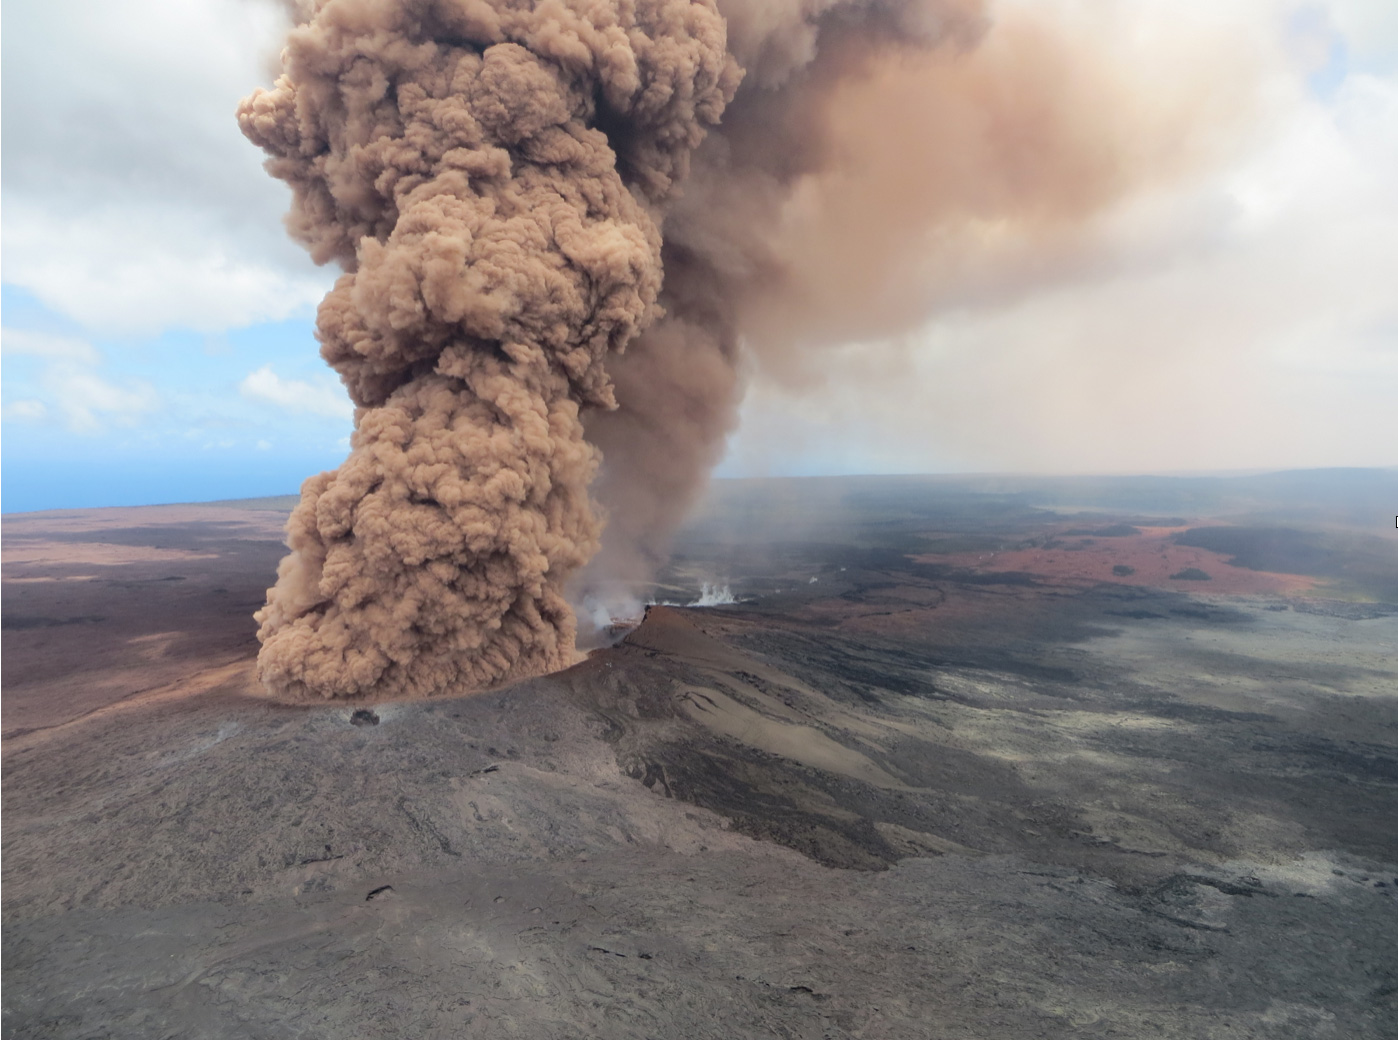 At 12:46 p.m. HST, a column of robust, reddish-brown ash plume occurred after a magnitude 6.9 South Flank of Kïlauea earthquake shook the Big Island of Hawai'i. (USGS HVO)